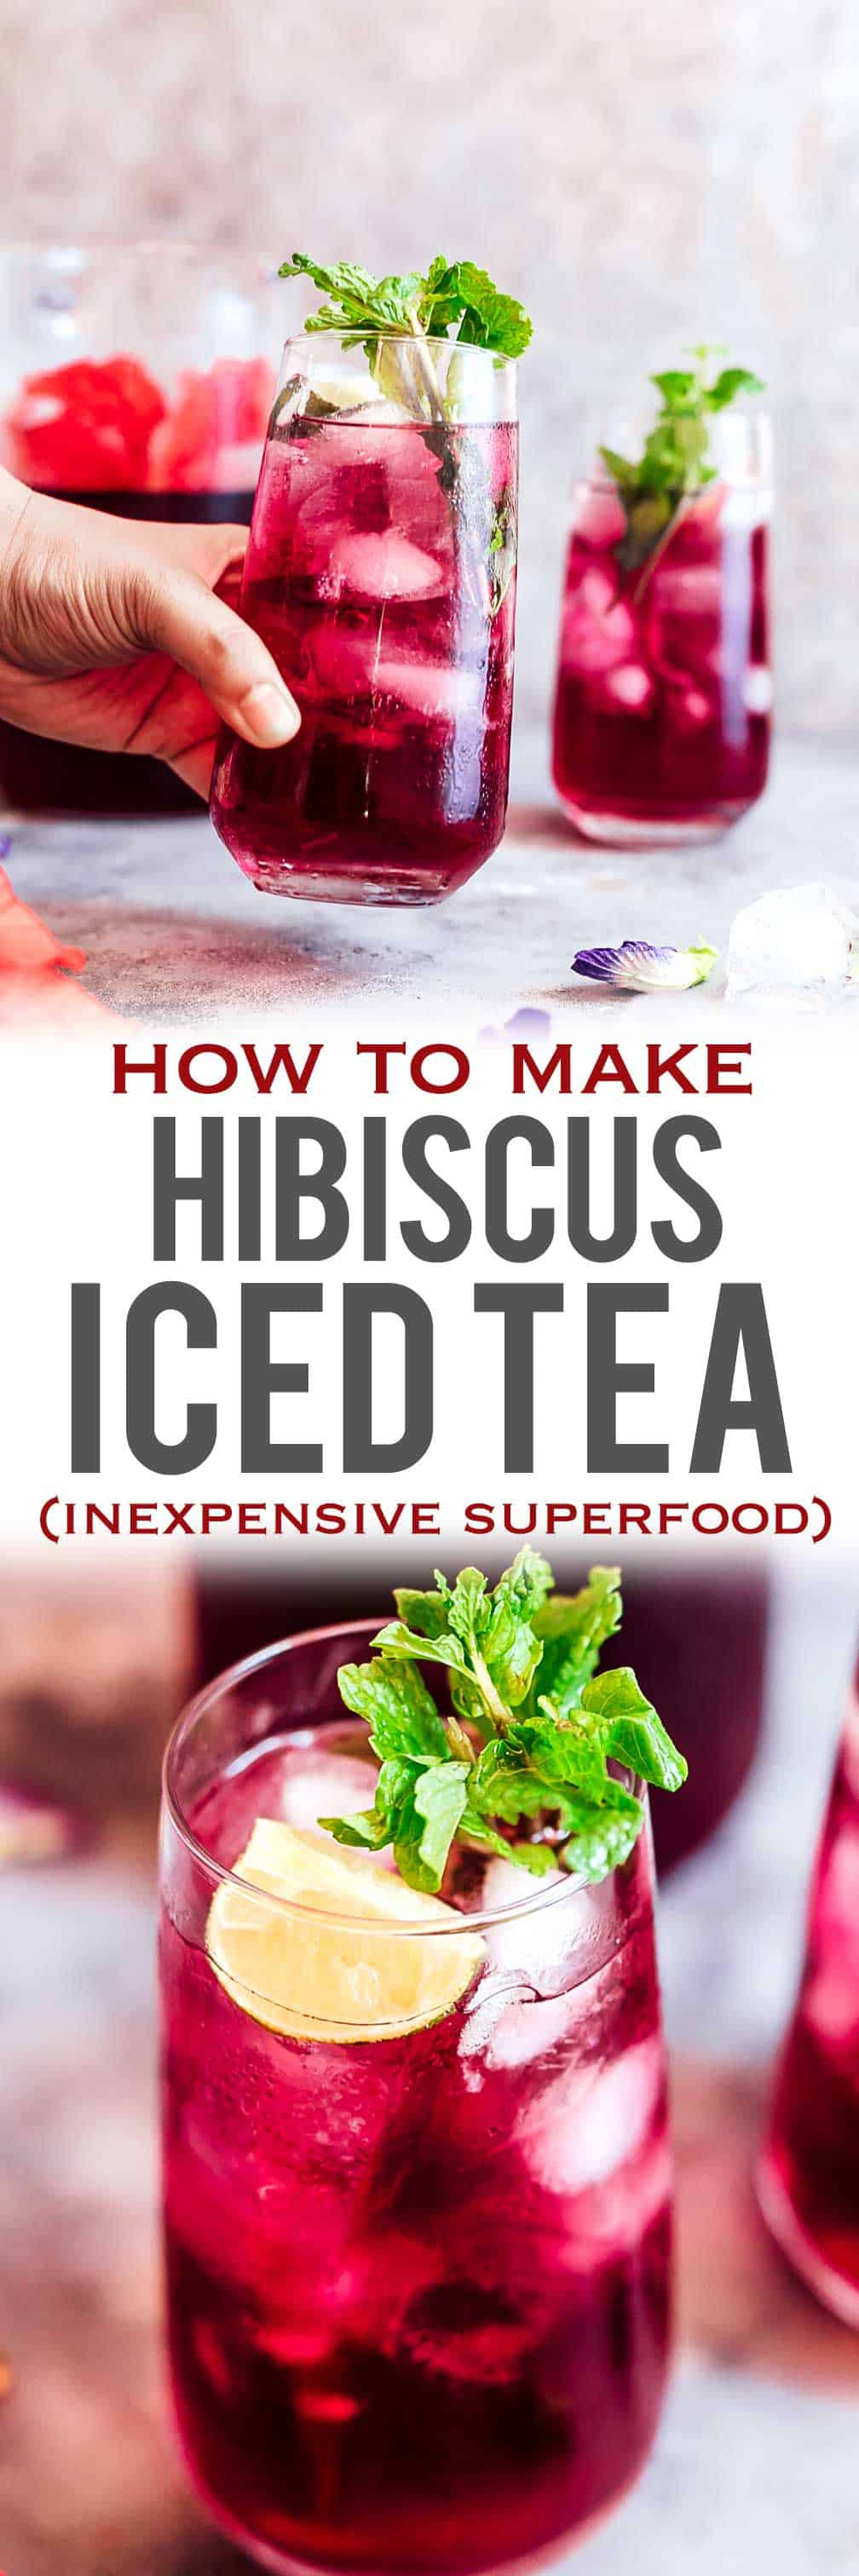 How to make hibiscus tea benefits and side effects learn how to make hibiscus tea which has some amazing benefits make this with either izmirmasajfo Images